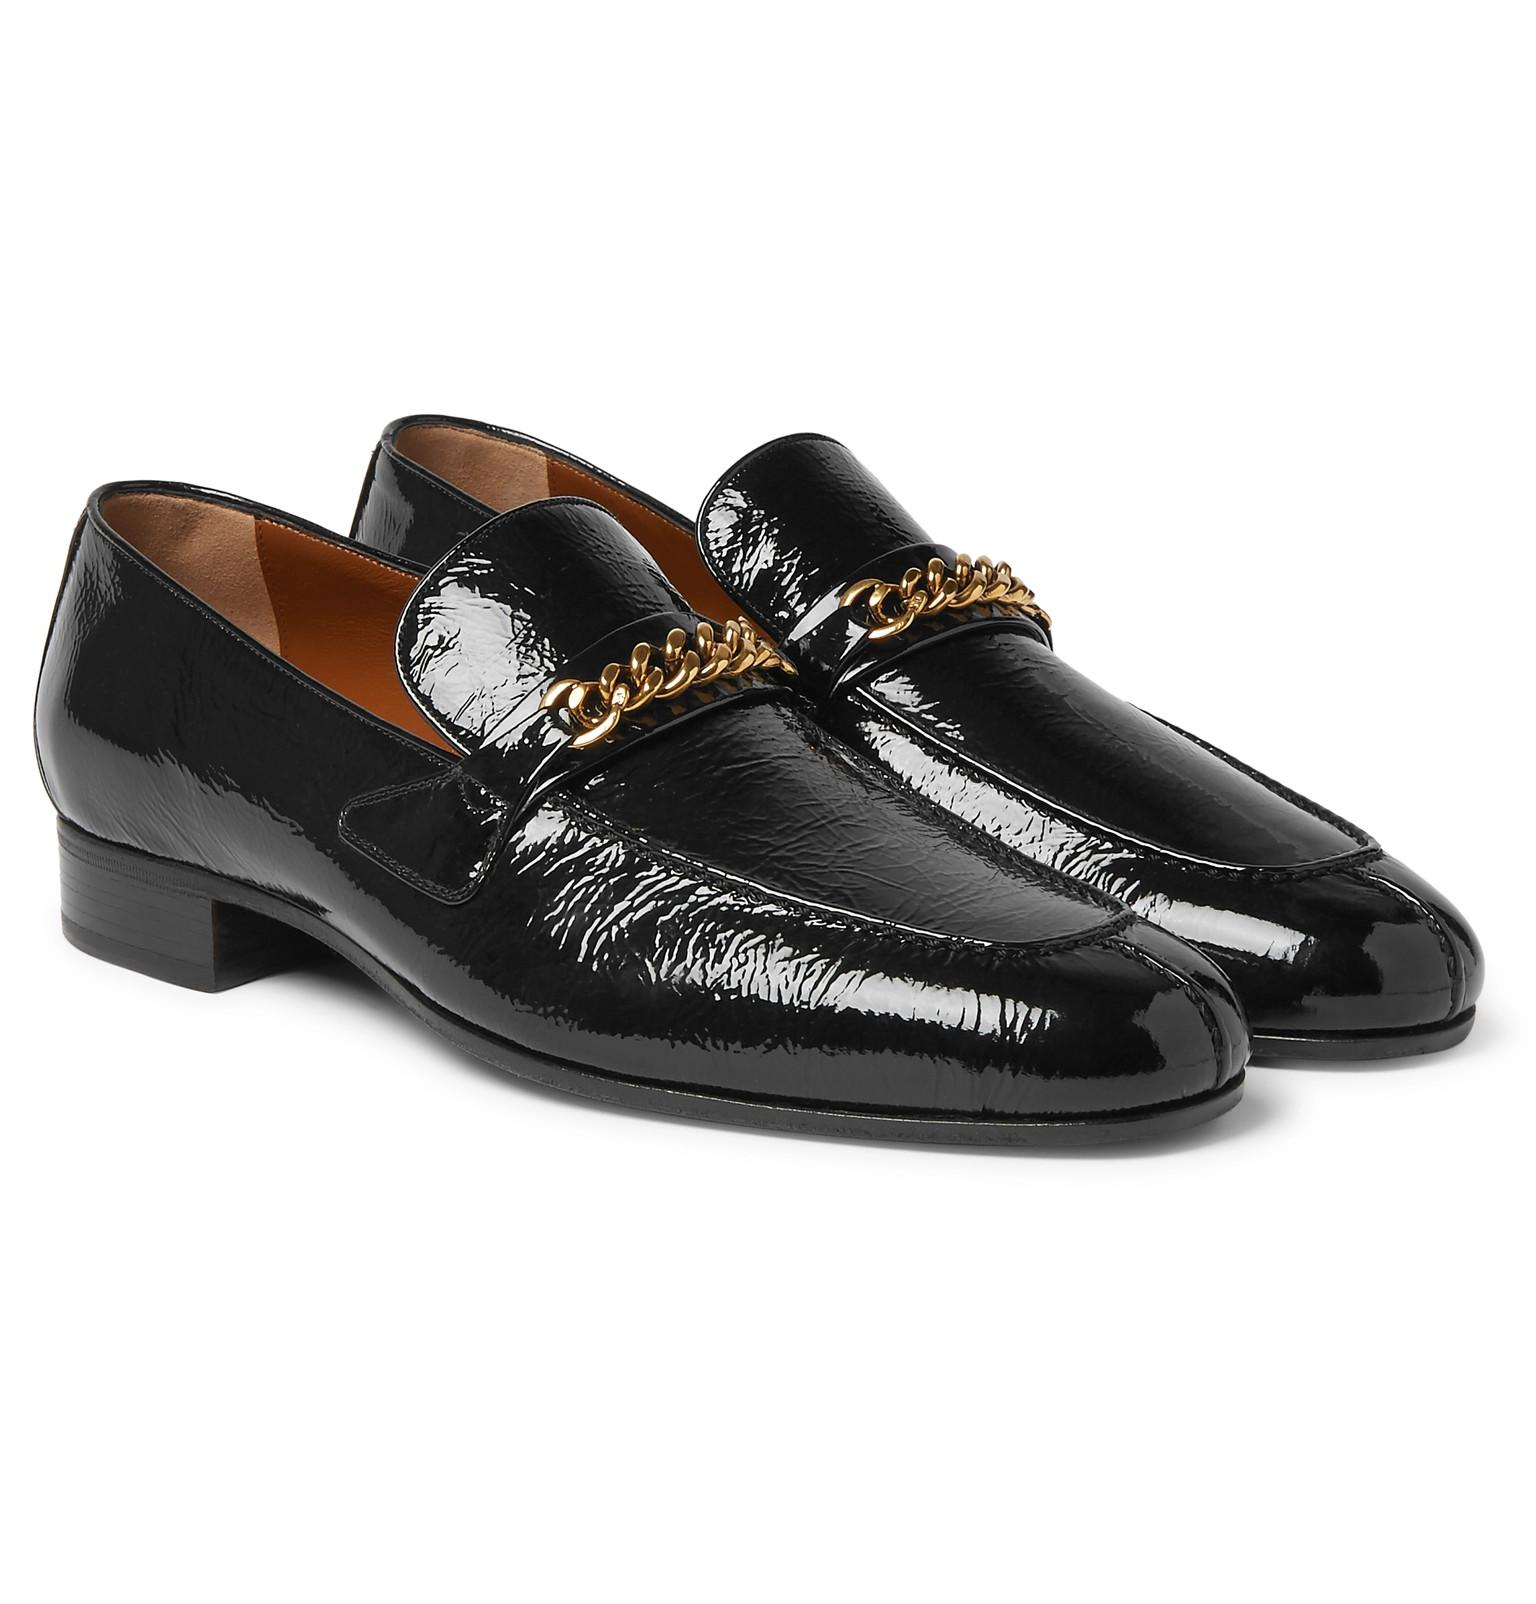 fa5e589232cb Tom Ford Peer Chain-trimmed Textured Patent-leather Loafers in Black ...